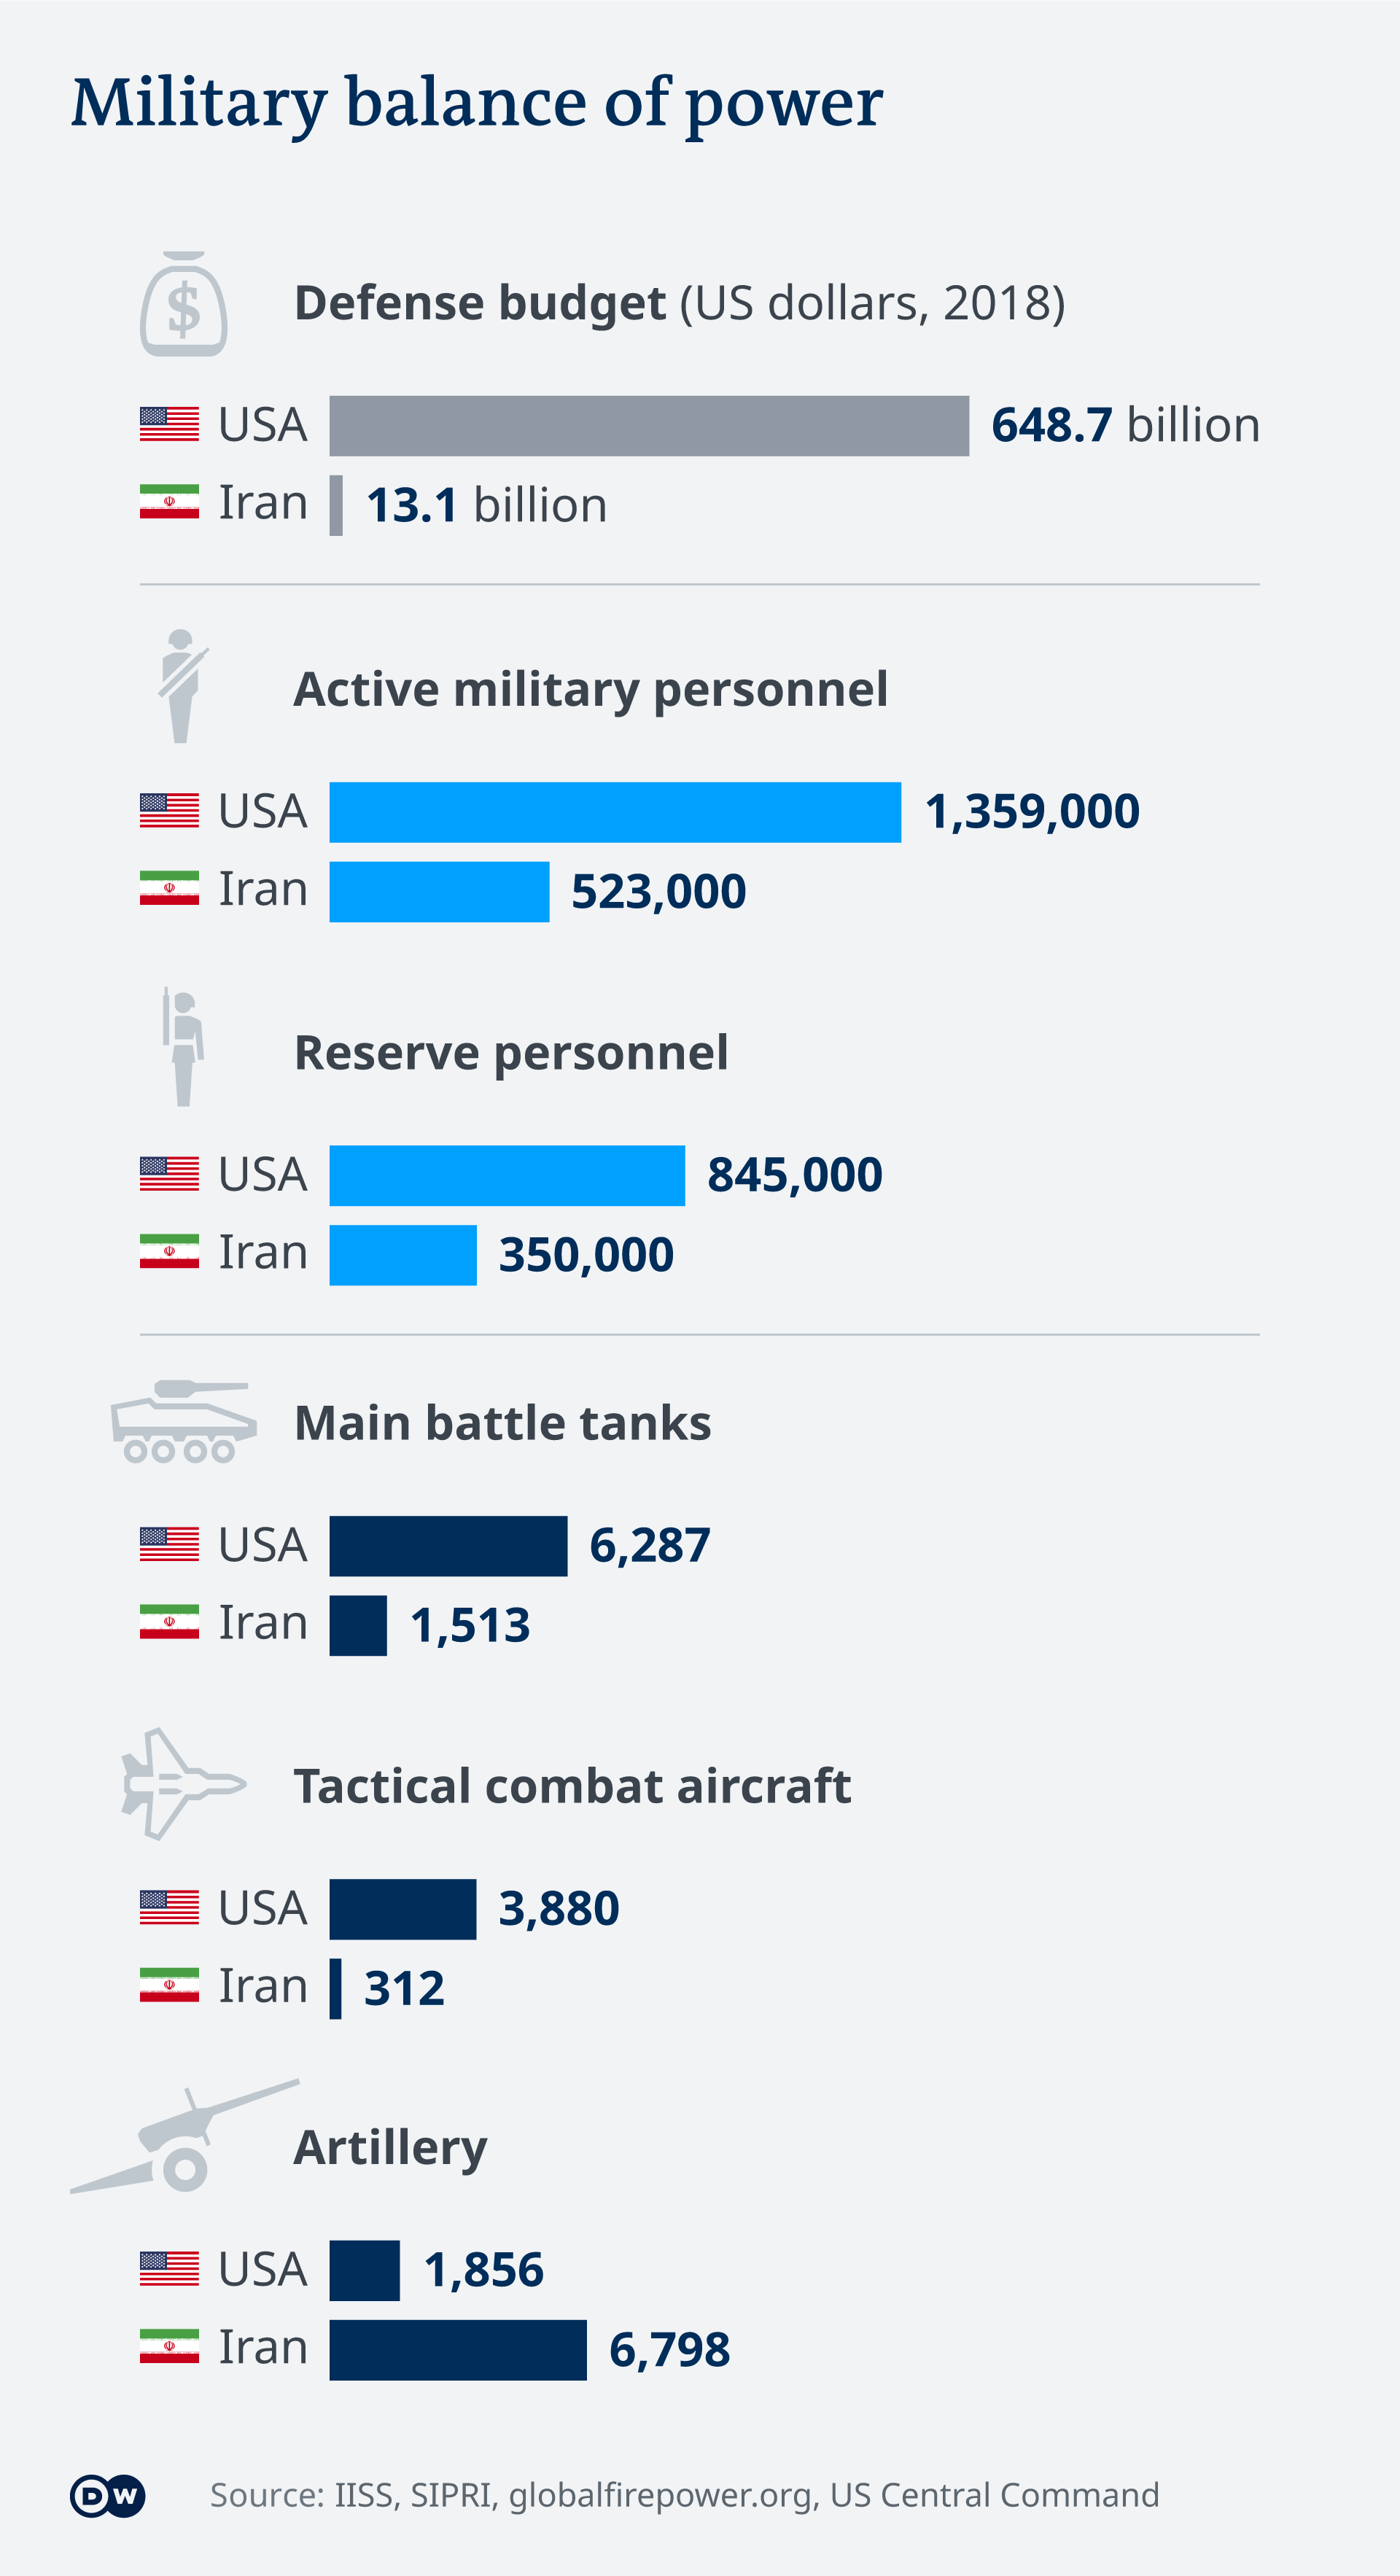 Comparison of US and Iran defense spending